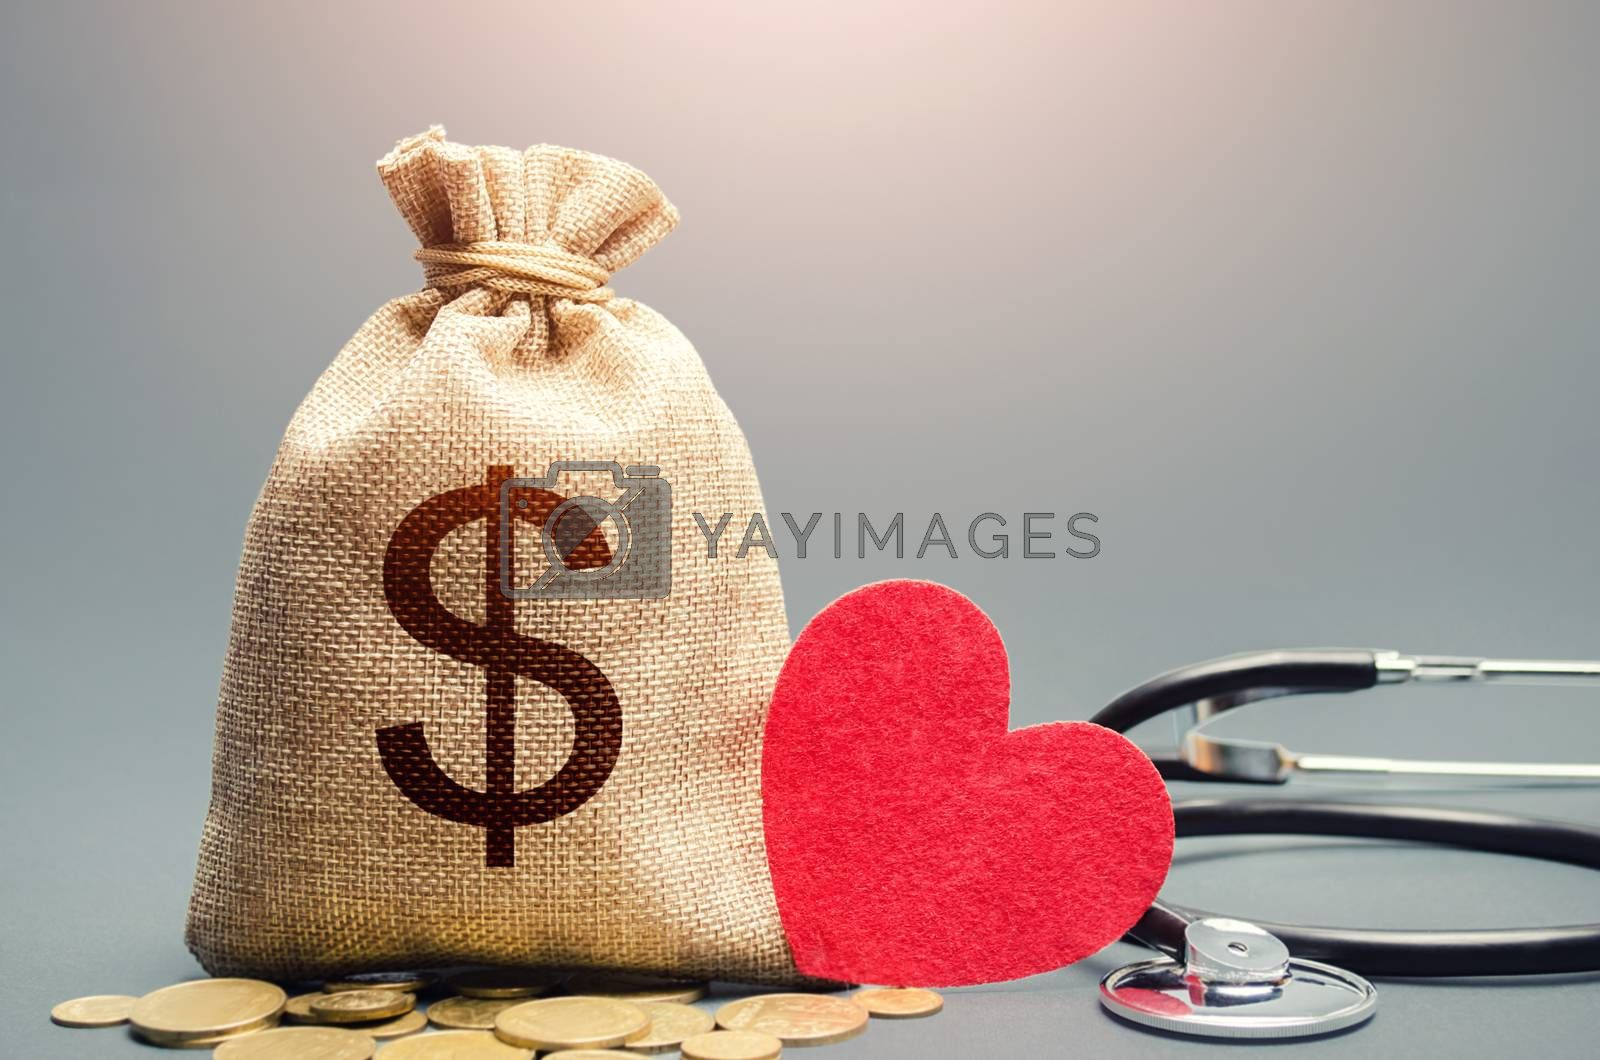 Dollar money bag and stethoscope. Health life insurance and financing concept. Funding healthcare system. Reforming and preparing for new challenges. Development, modernization. Subsidies, investments